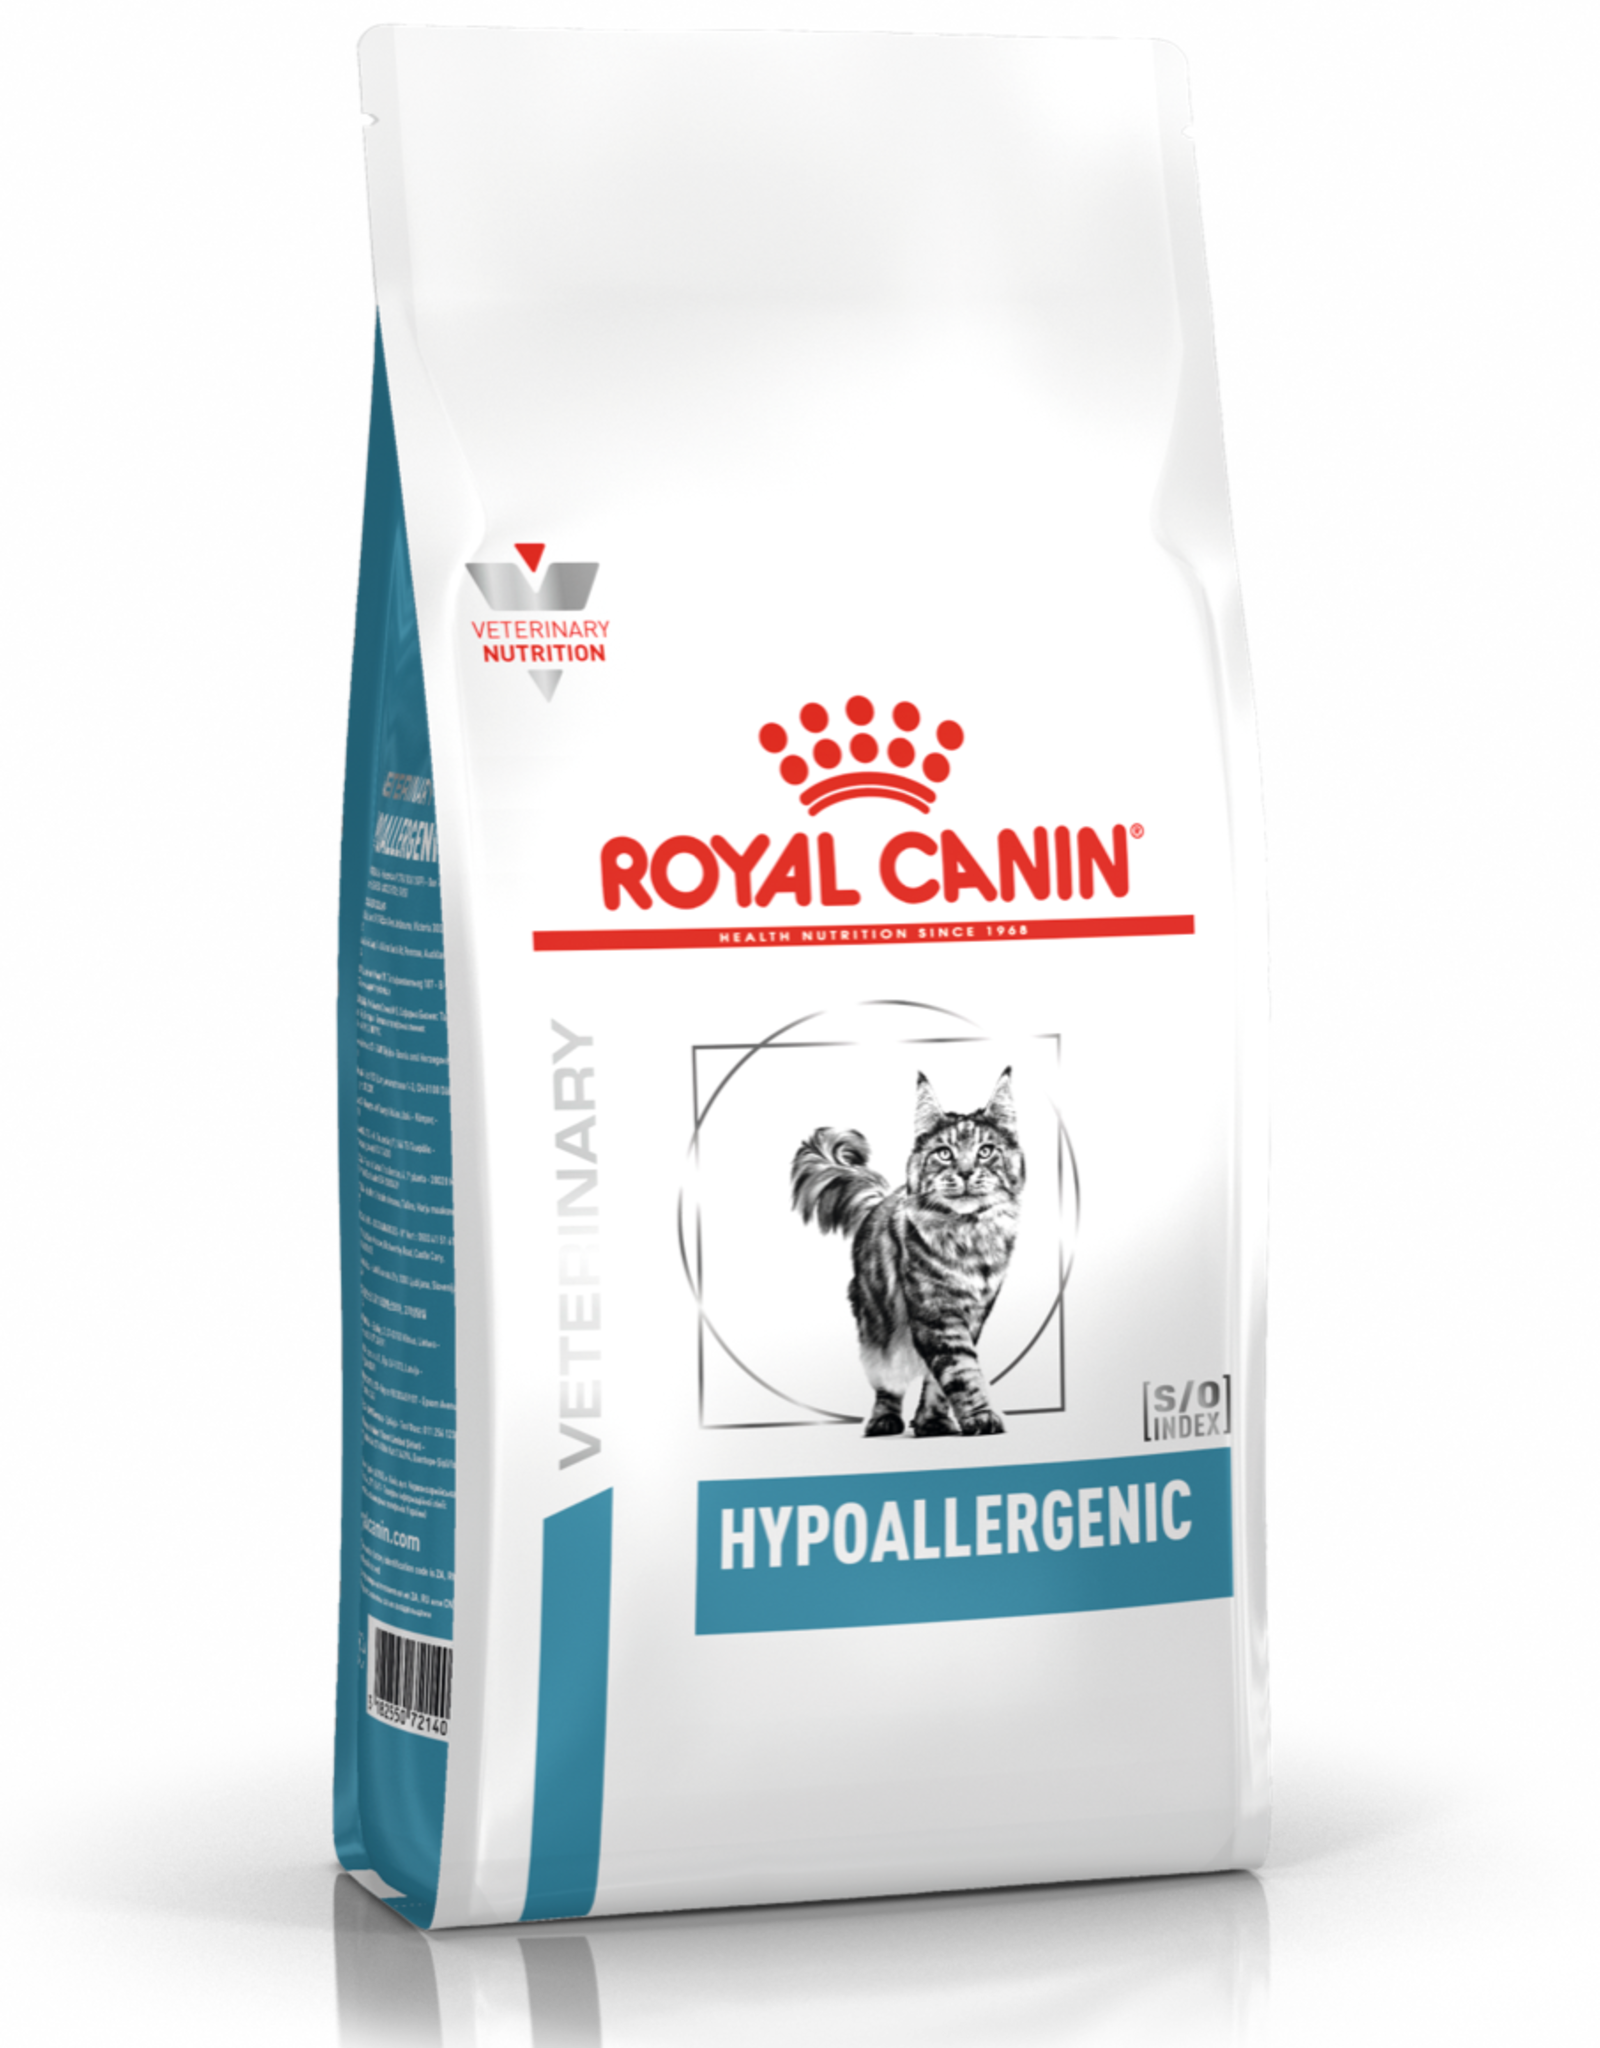 Royal Canin Royal Canin Hypoallergenic Katze 2,5kg